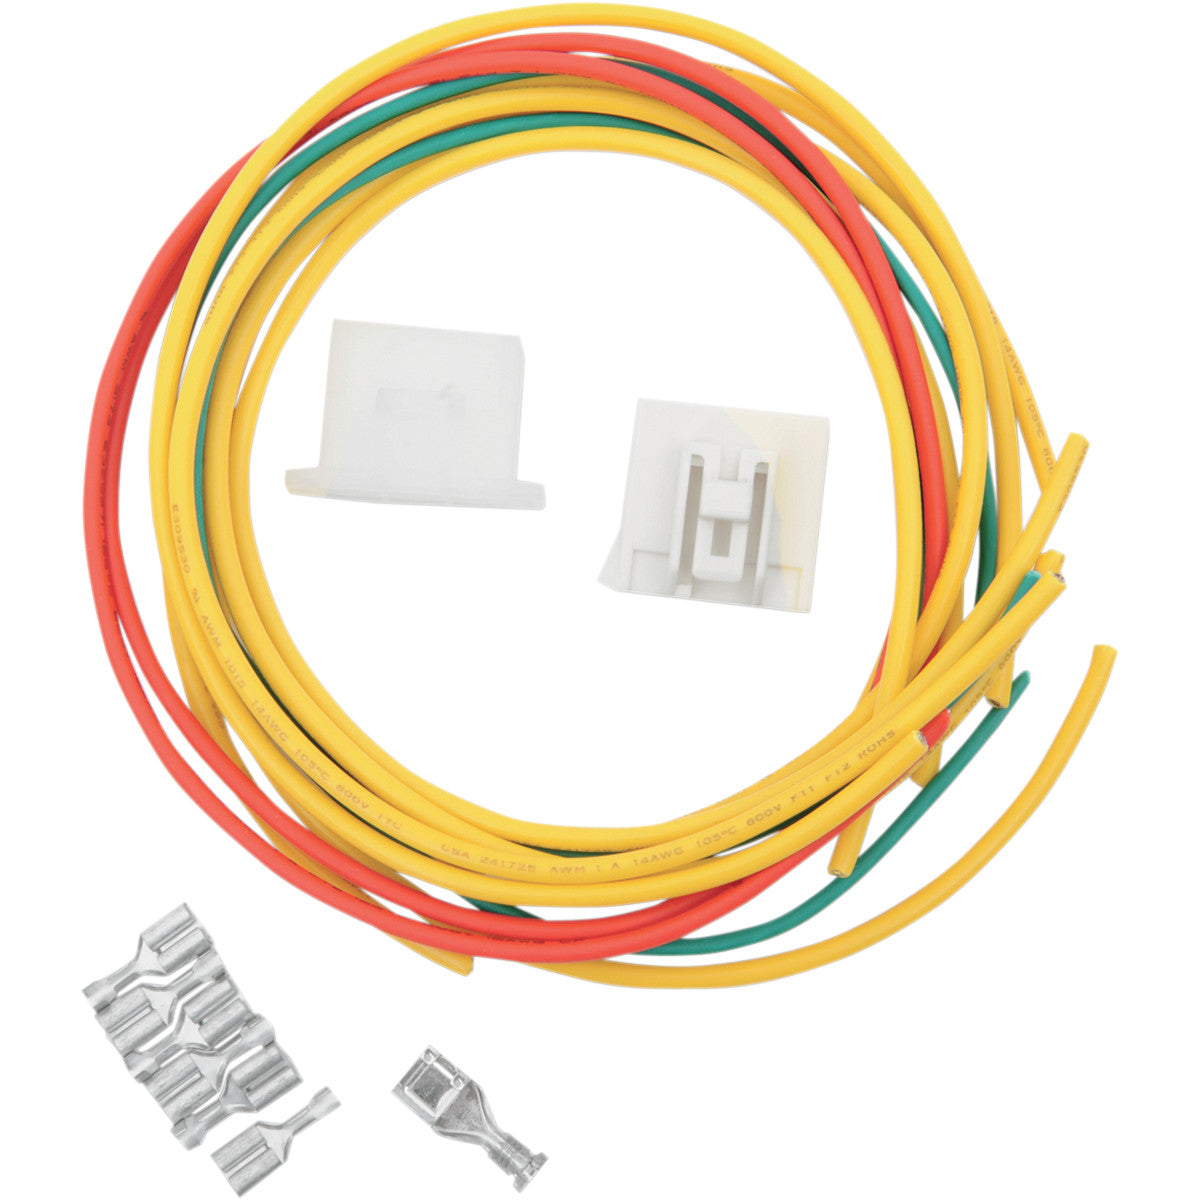 2120-0550 RICK'S MOTORSPORT ELECTRIC Rectifier/Regulator Wiring Harness Connector Kit WIRING CONNECTOR HON